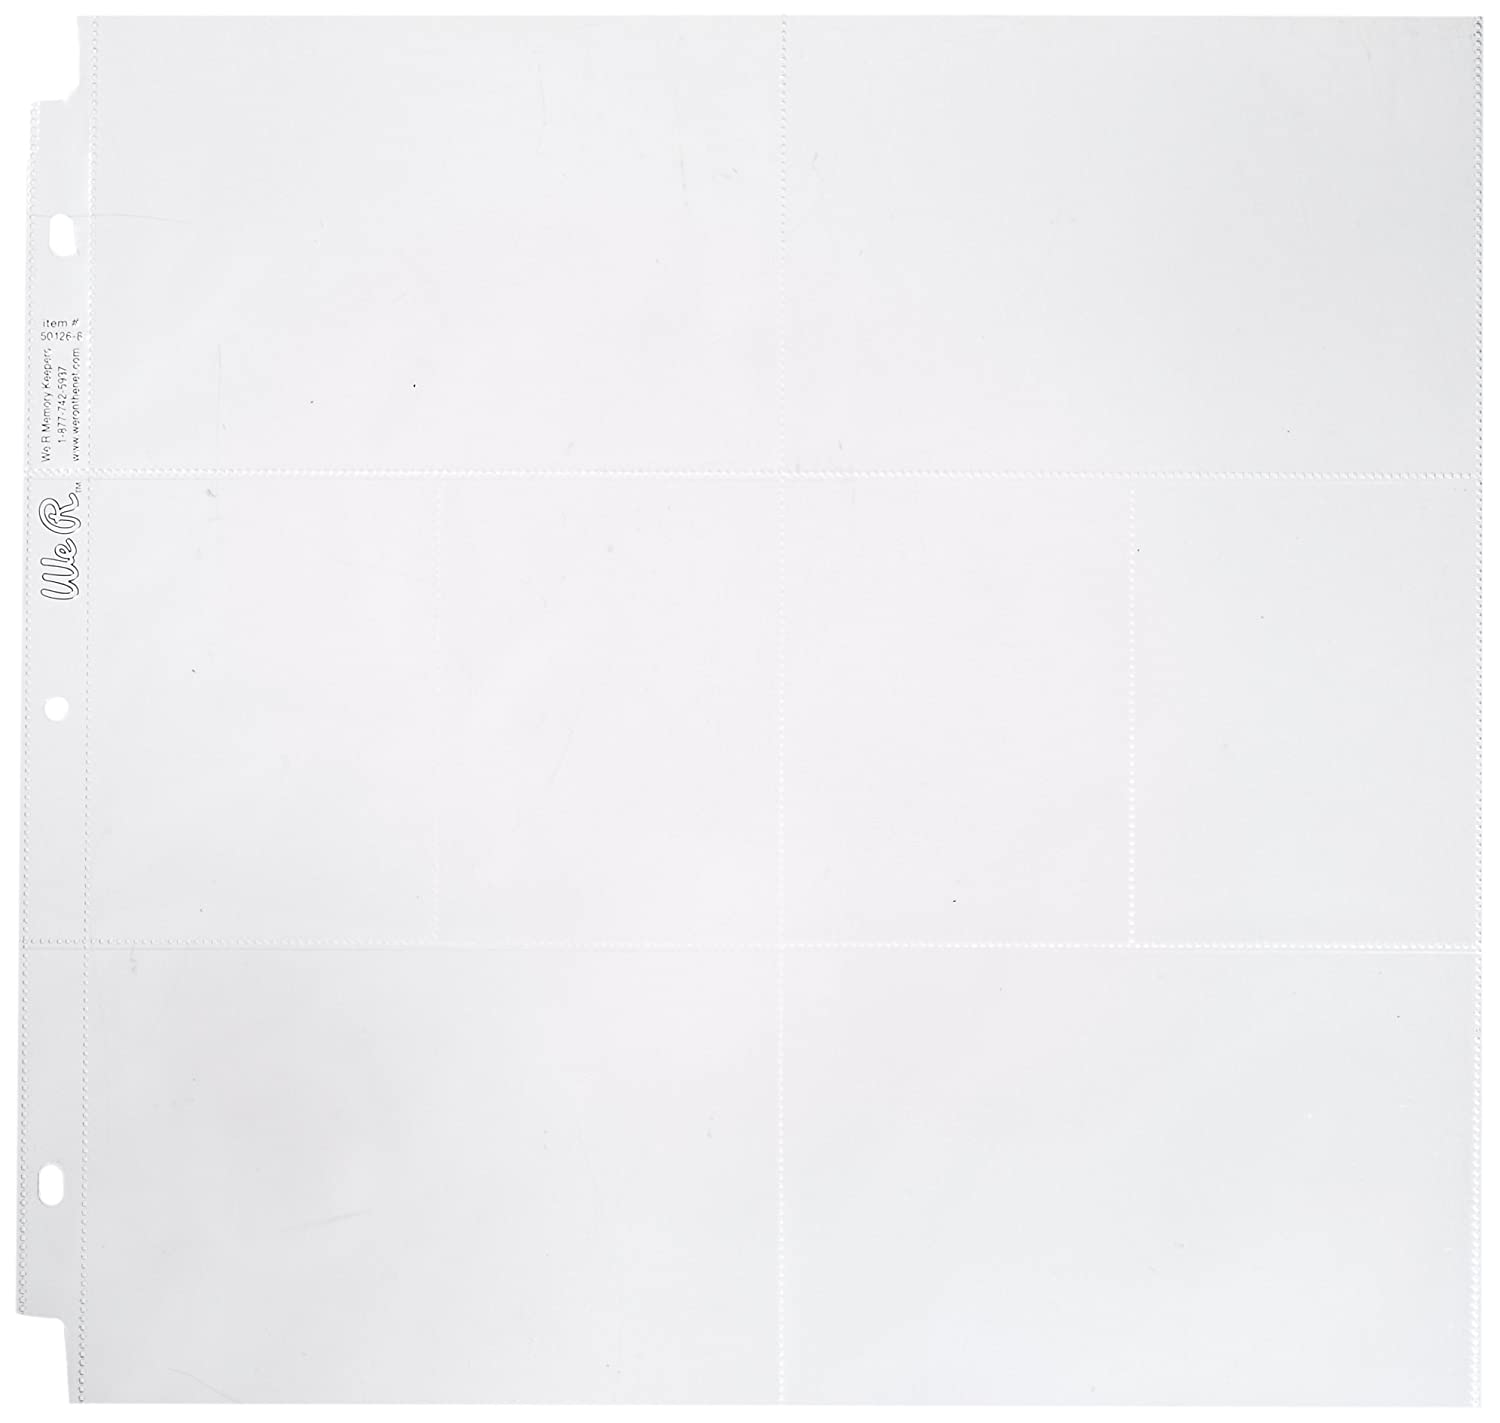 We R Memory Keepers WR50126 Albums and Refills Ring Photo Sleeve 12-Inch X 12-Inch 10 Pkg-4 (6X4) and 4 (3X4) Pockets 50126-8